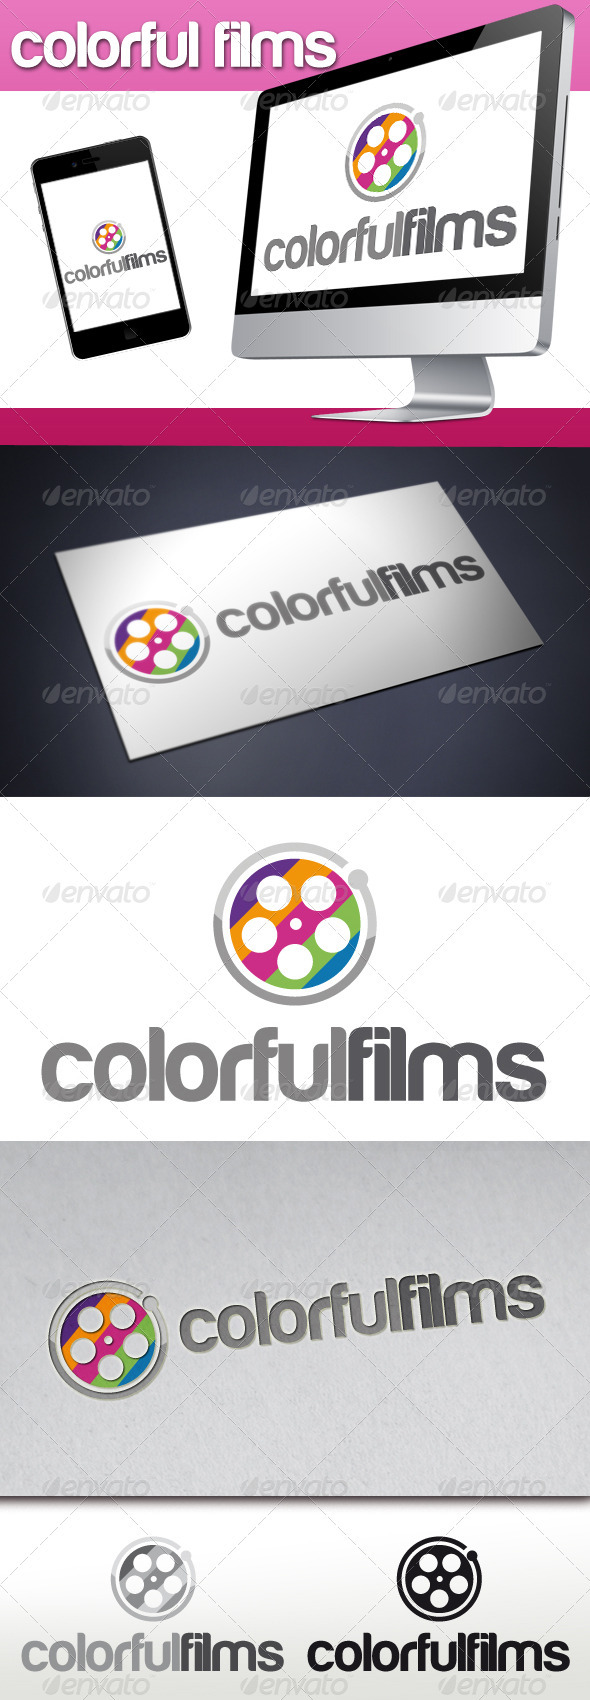 Colorful Films Logo